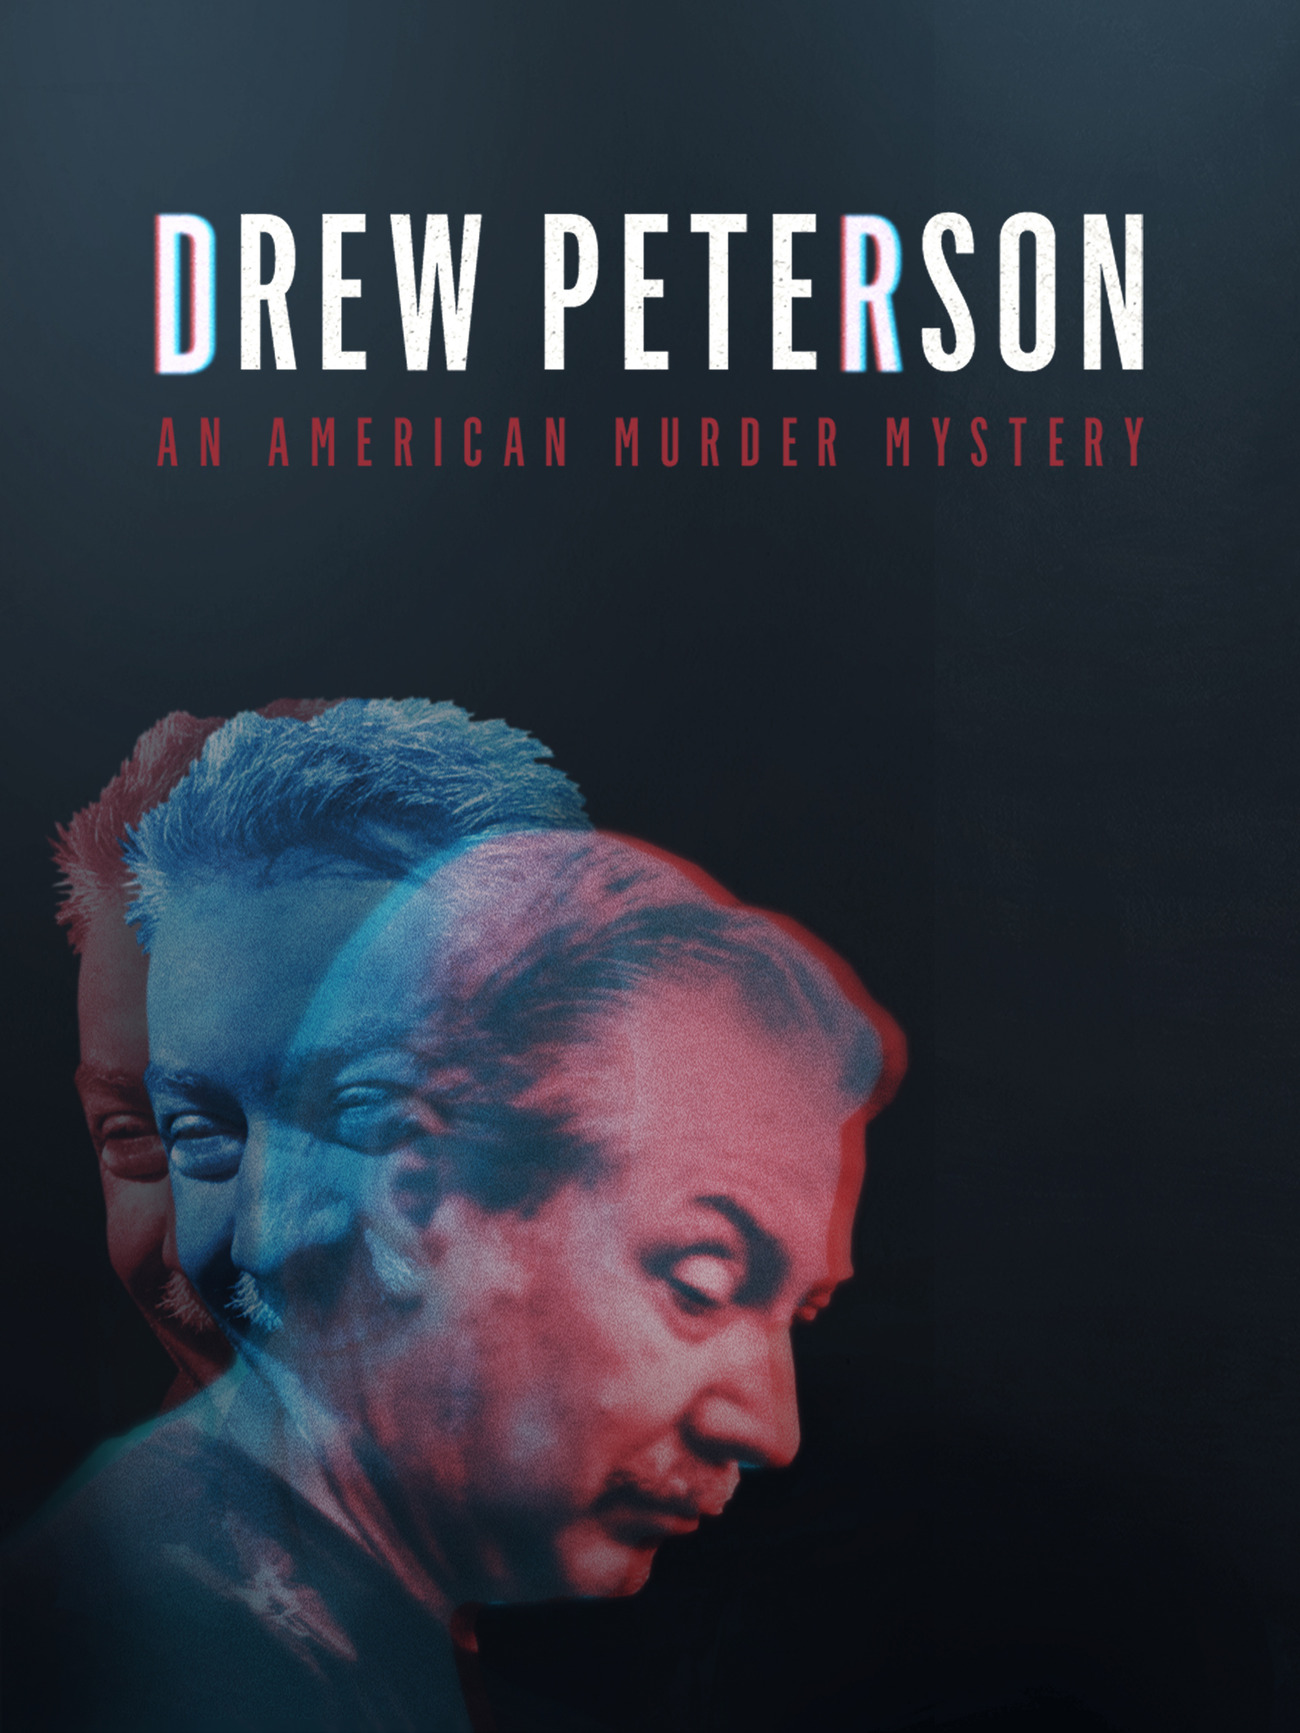 Drew Peterson: An American Murder Mystery (2017)